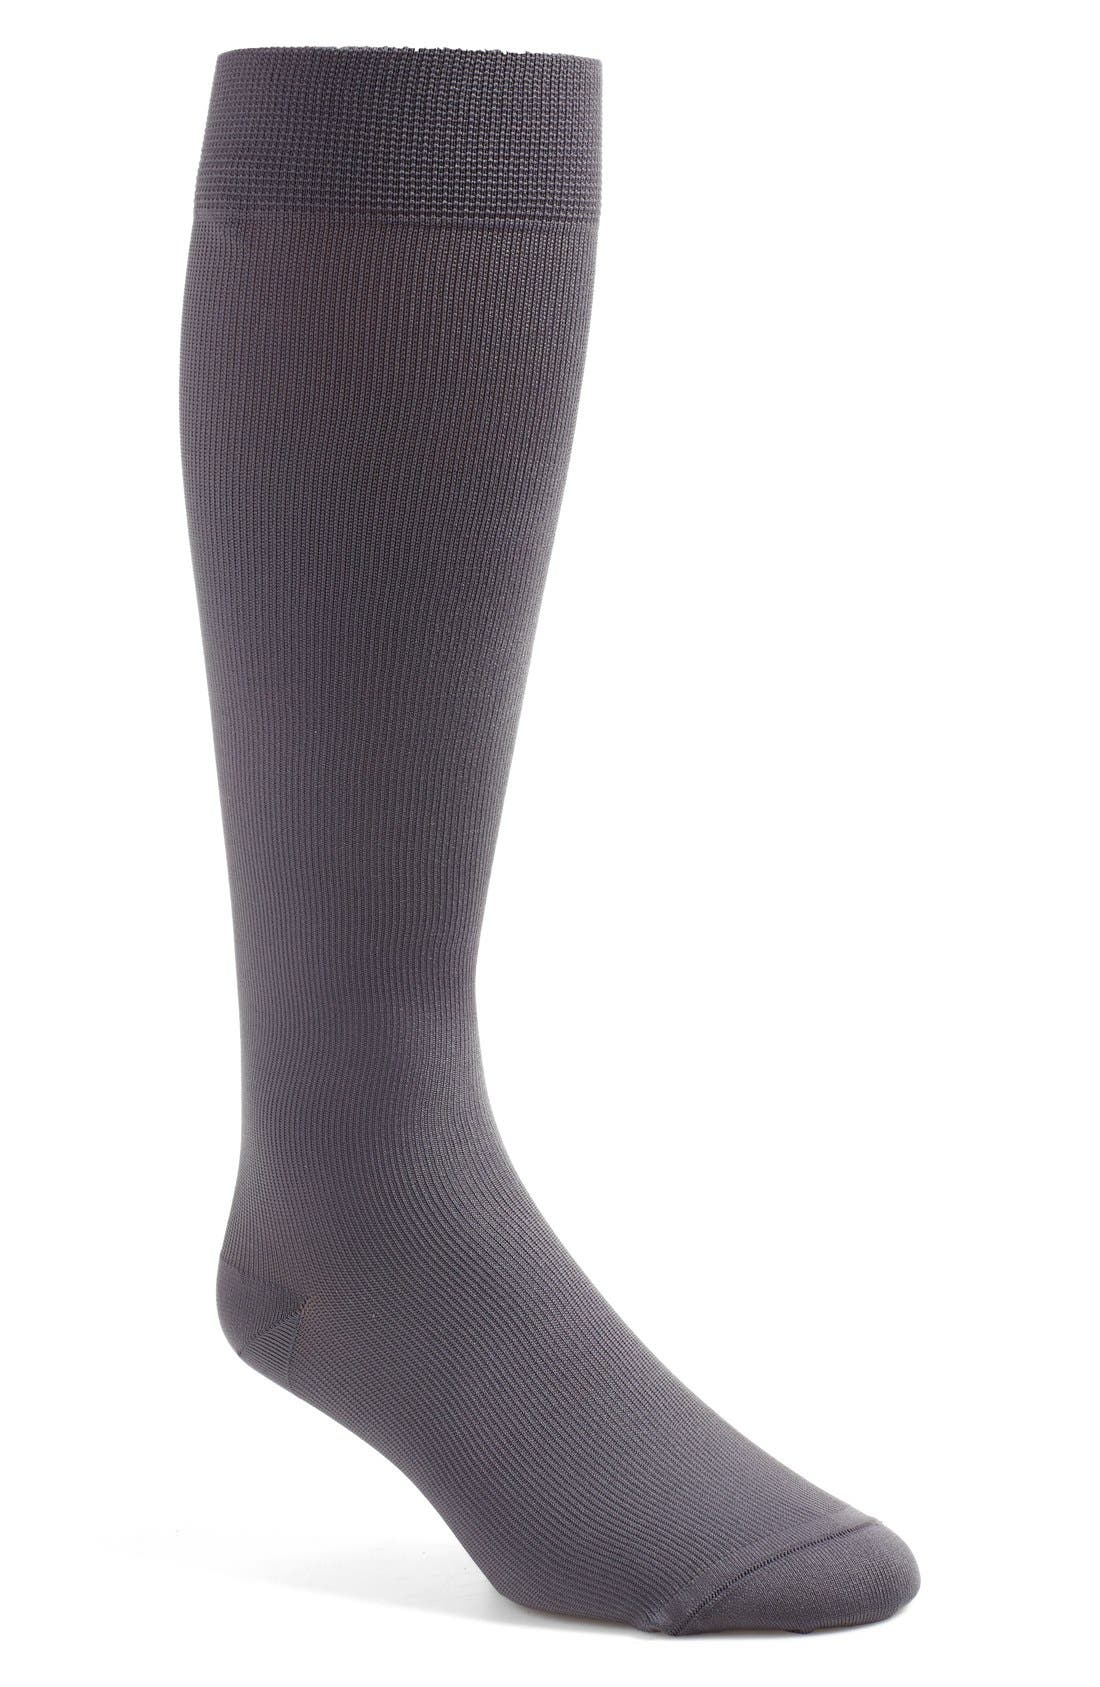 INSIGNIA BY SIGVARIS 'Keynote' OvertheCalf Socks